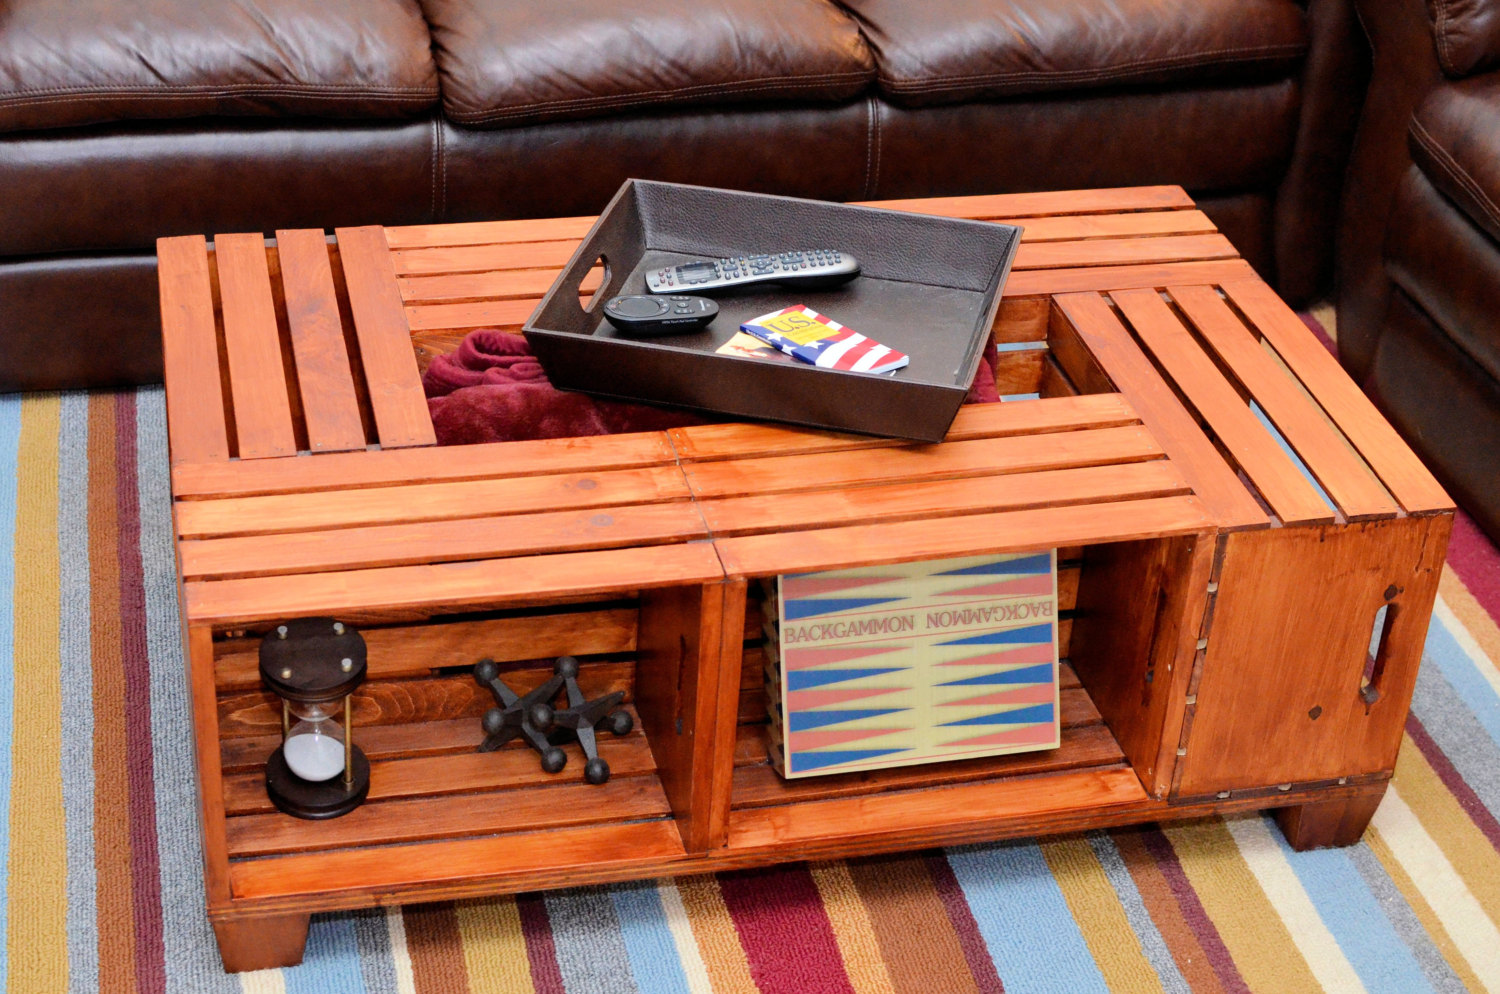 Crate Coffee Table. 16 Handy DIY Projects From Old Wooden Crates - 16 Handy DIY Projects From Old Wooden Crates - Style Motivation